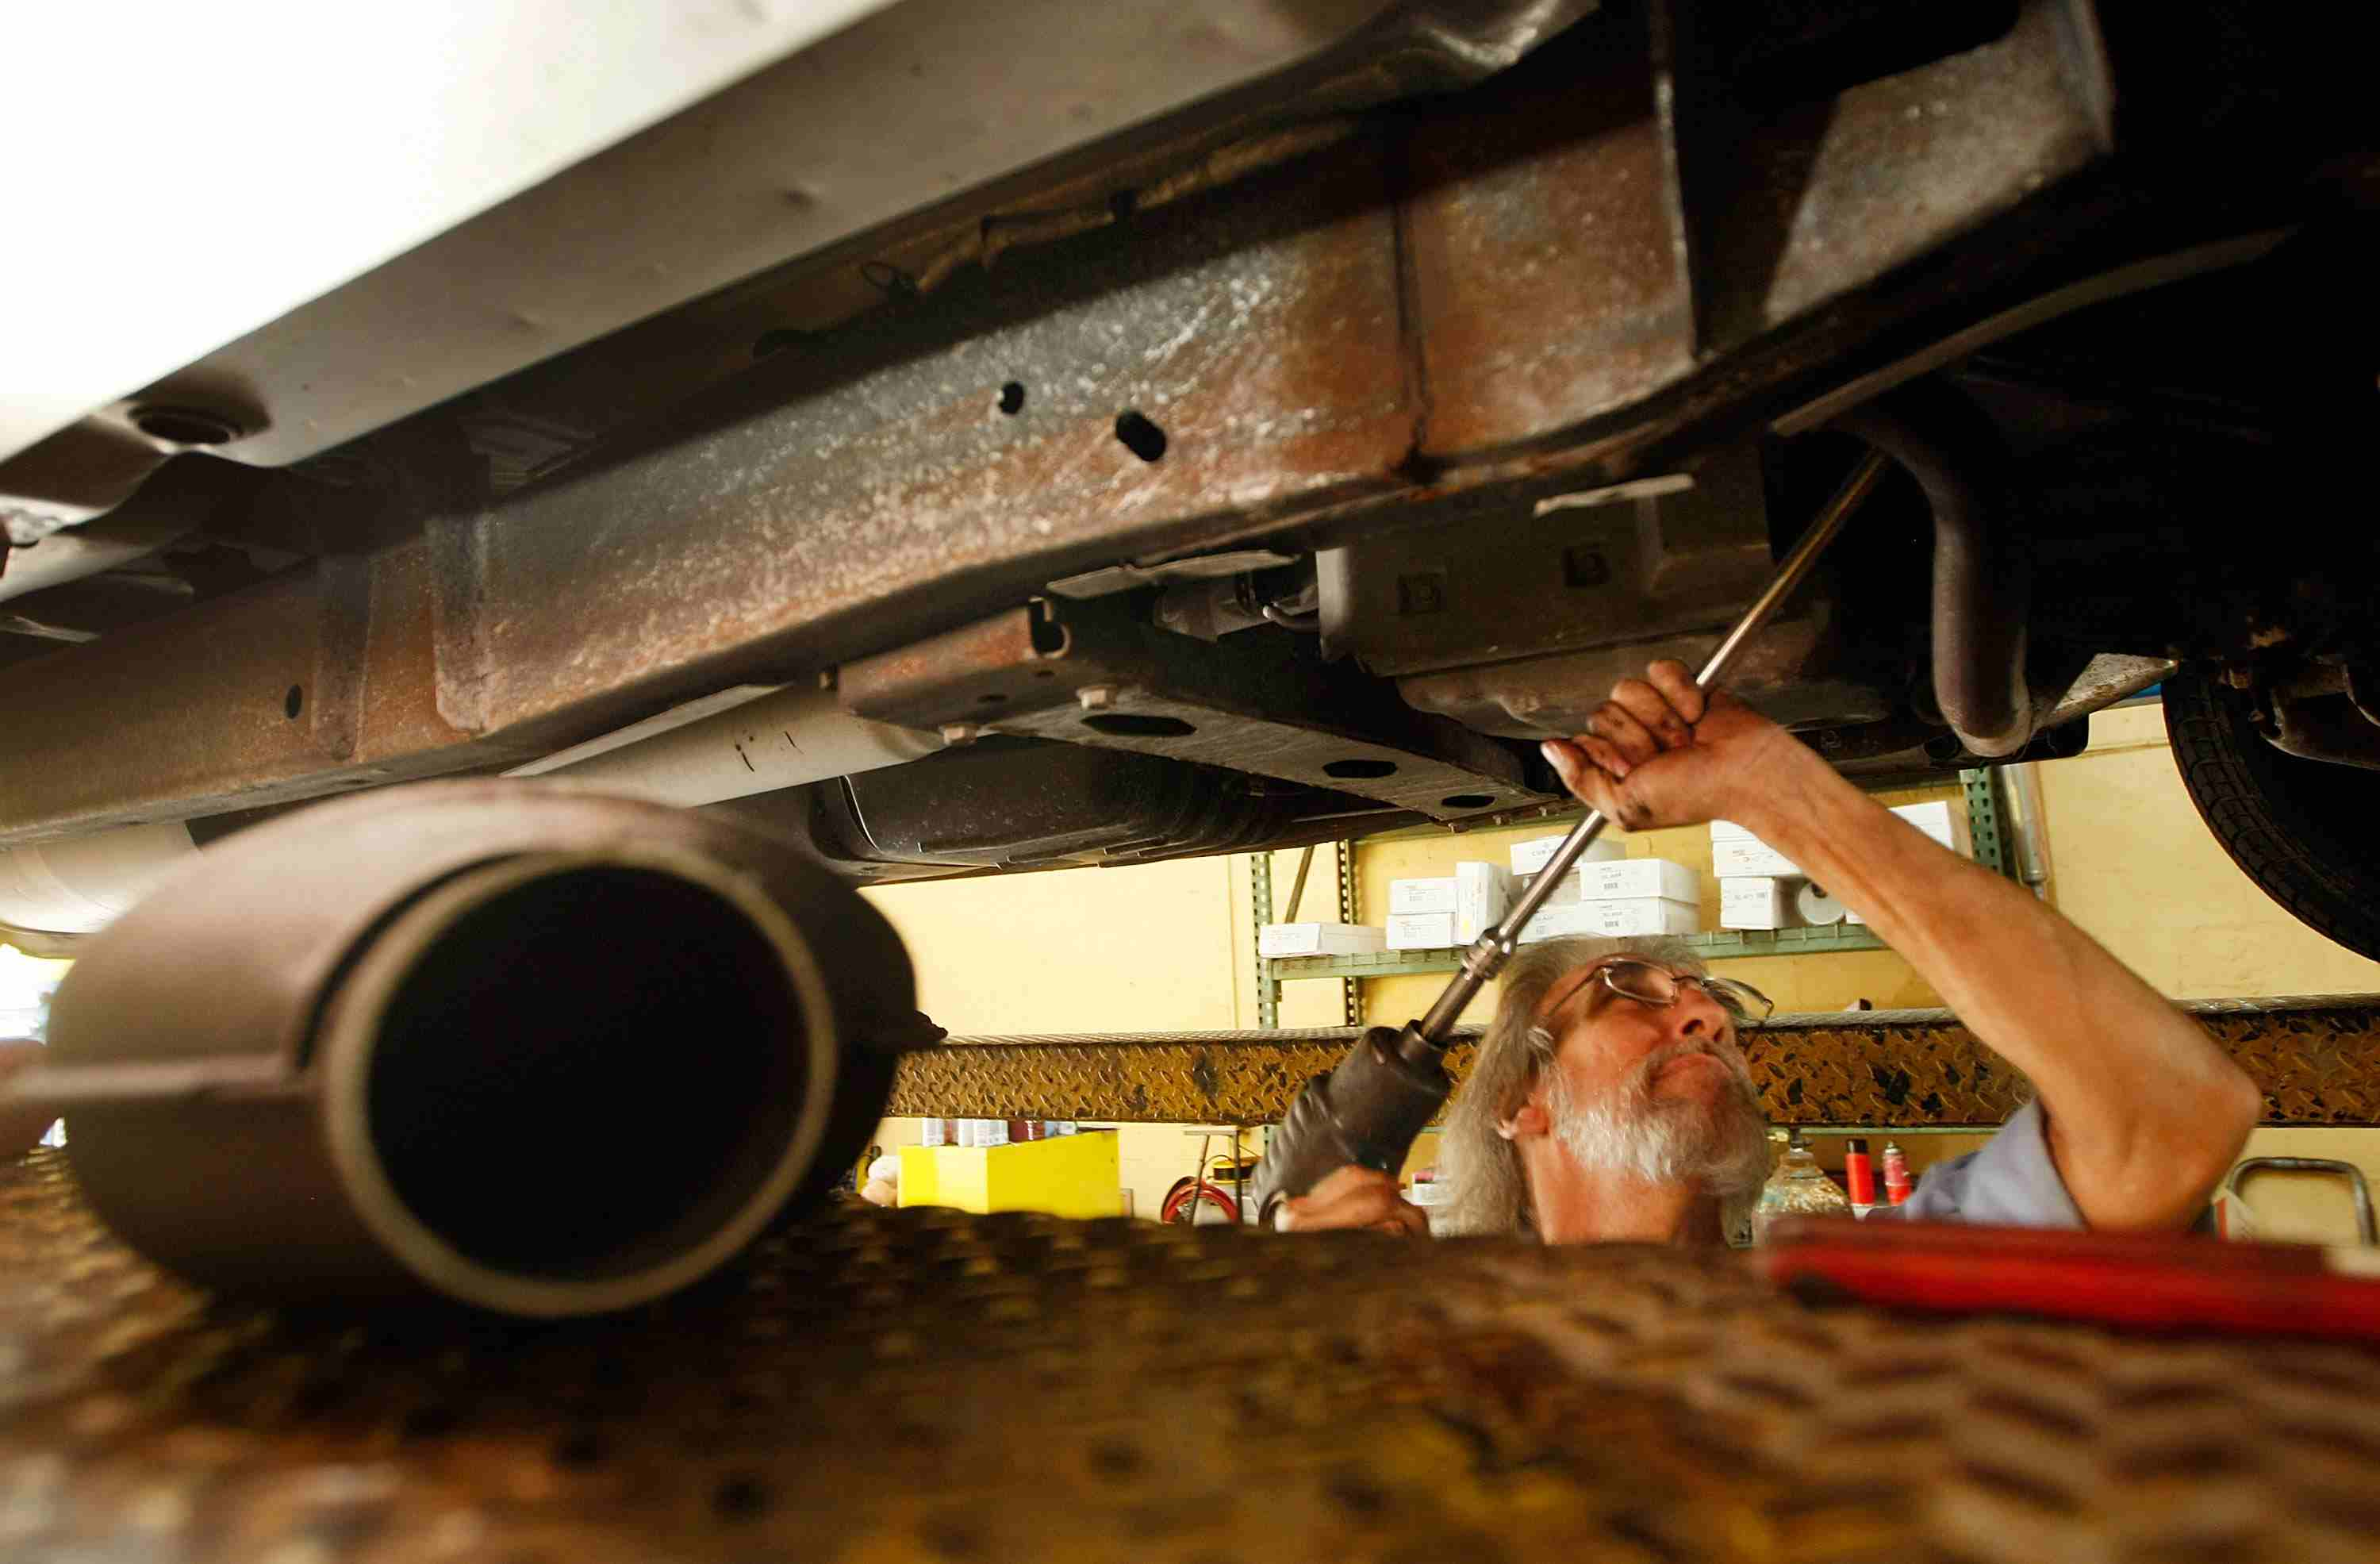 A mechanic removes a plugged catalytic converter.